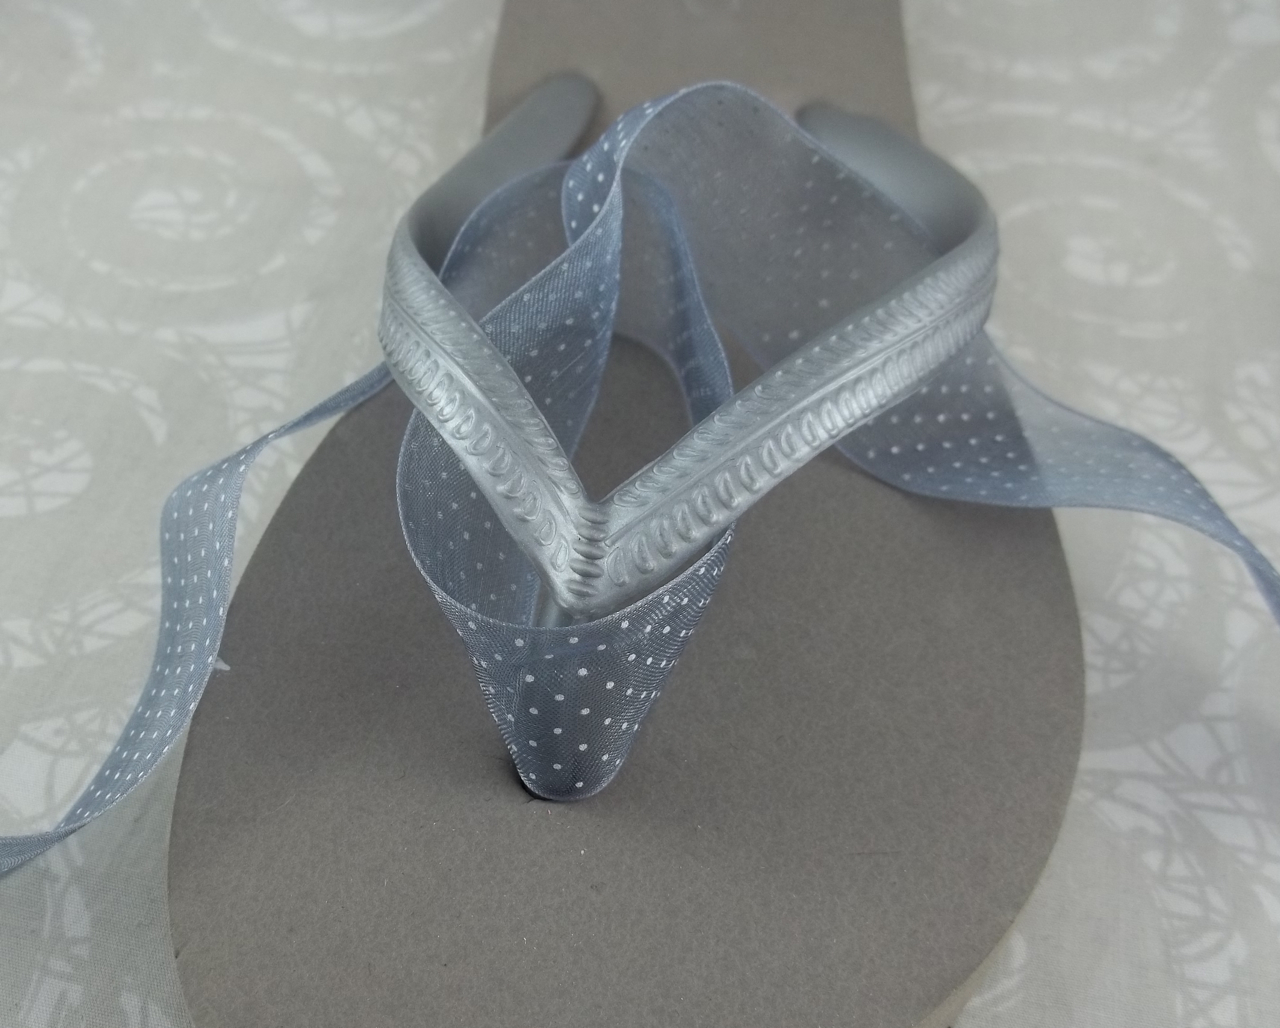 0efb7413569a Step 2 - Wrap the ribbon around the strap stem of the flip flop starting  from front to back and bringing it back to the front.